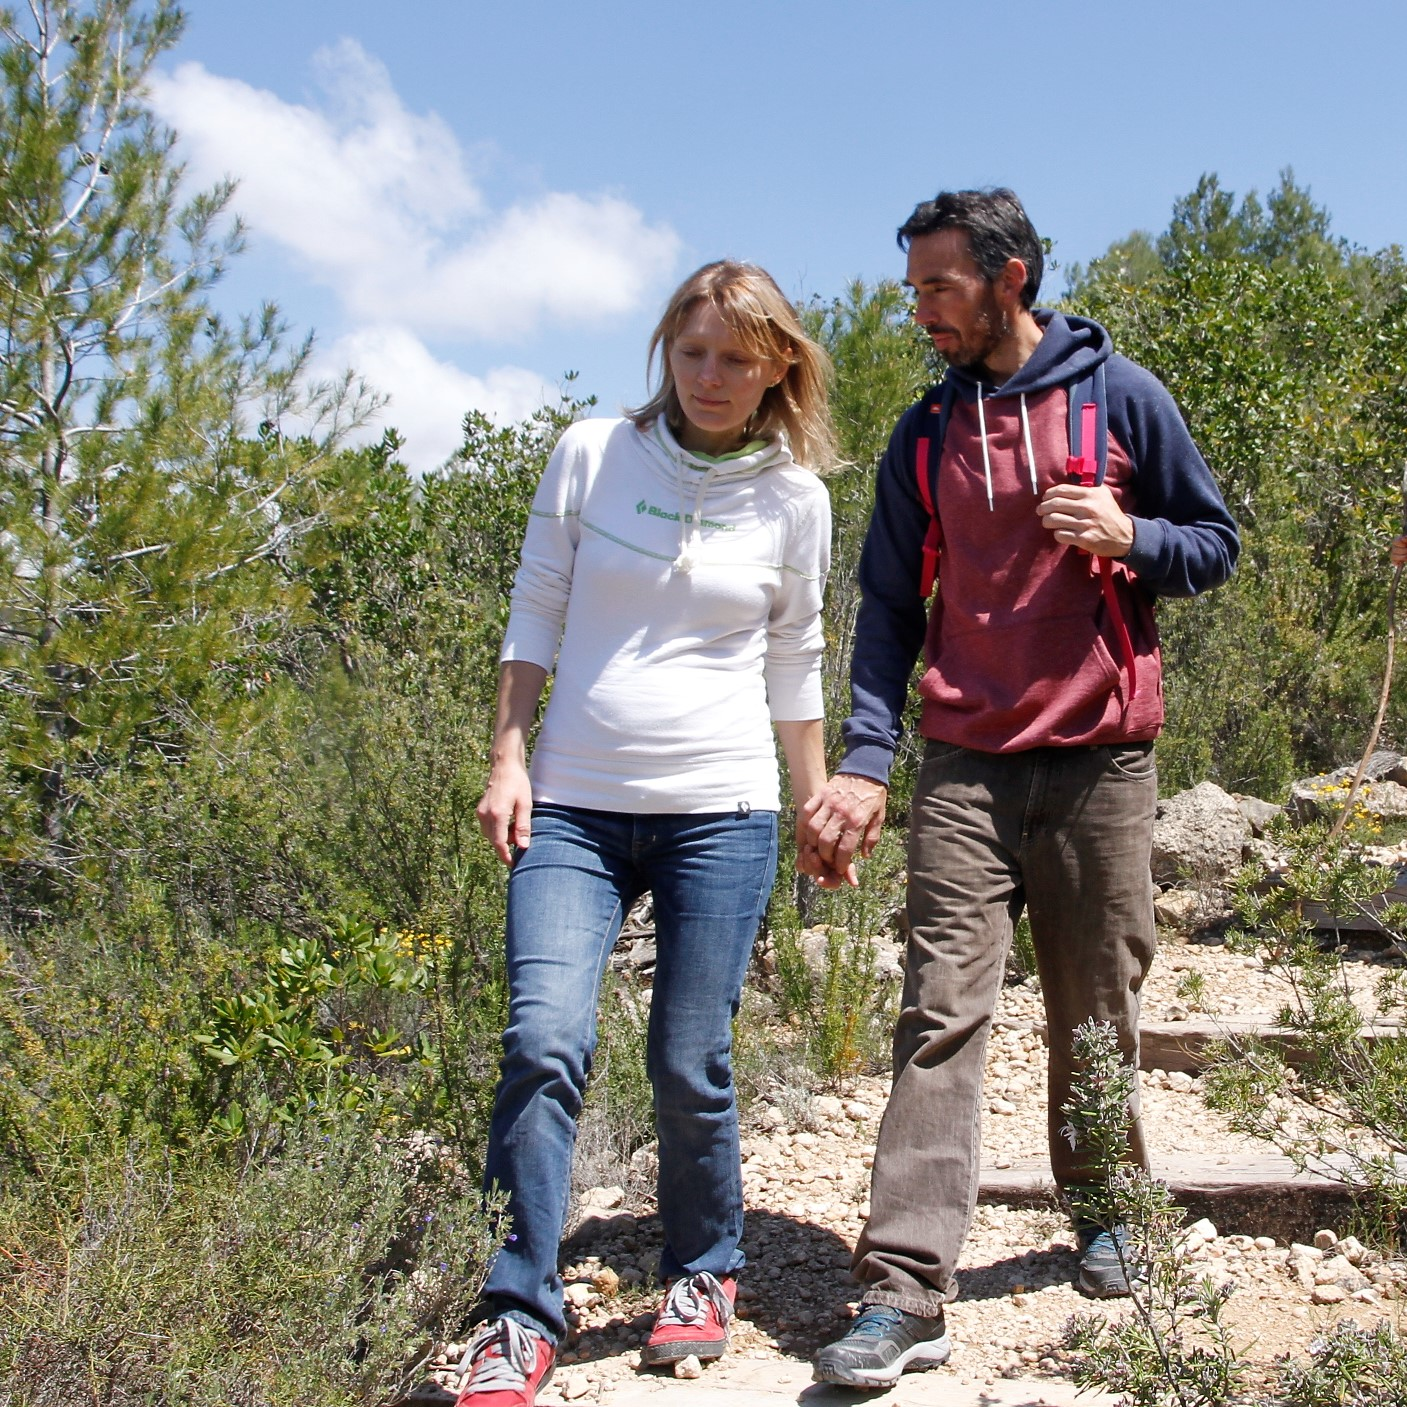 Maya Ayupova and Vicent Palau have made the .premium topos from Margalef and are the authors of Climbing Margalef guidebook and long term bolters of the area.